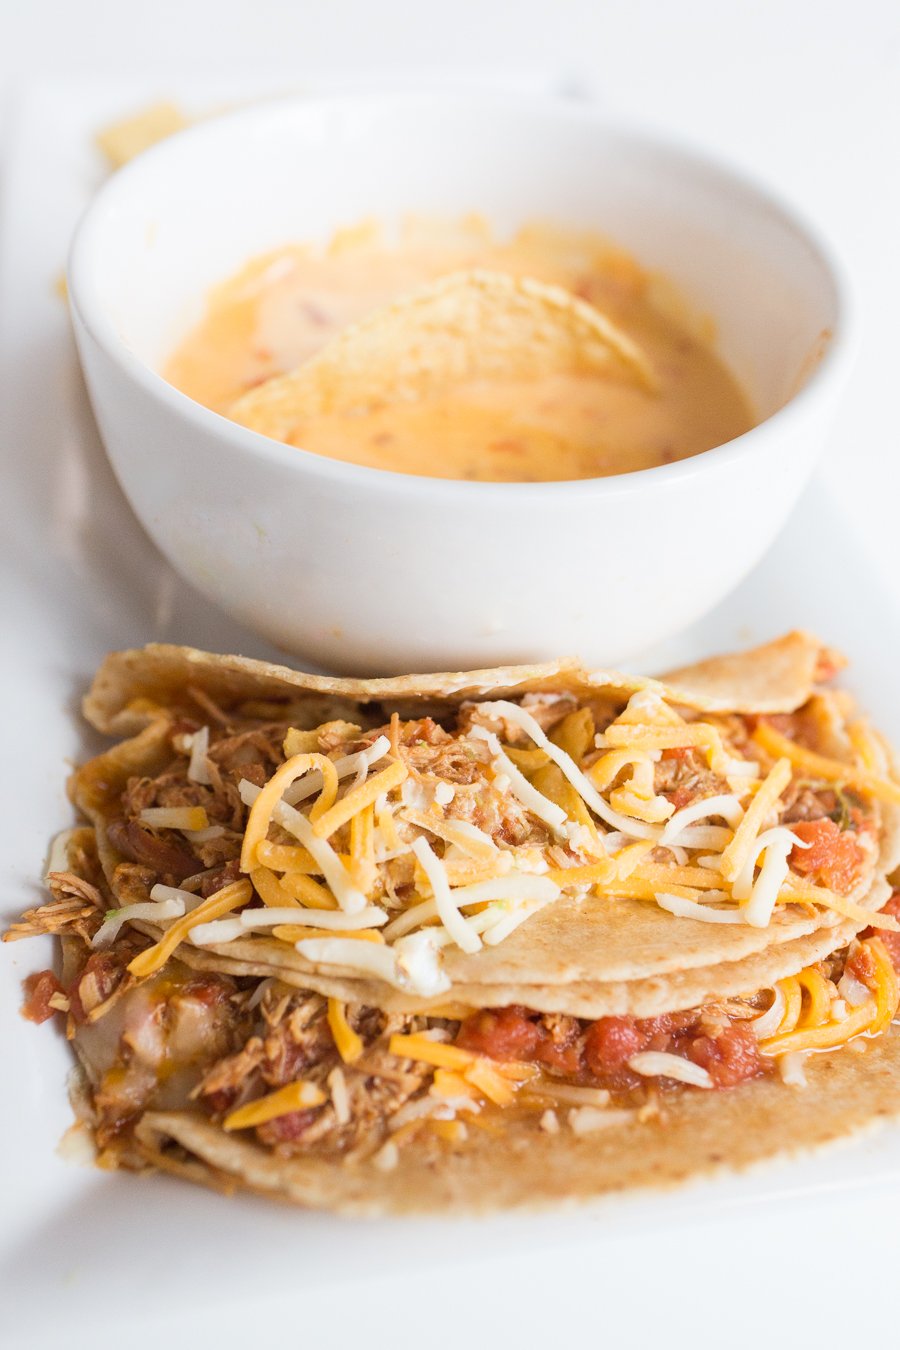 Two Minute Crockpot Chicken Tacos Recipes